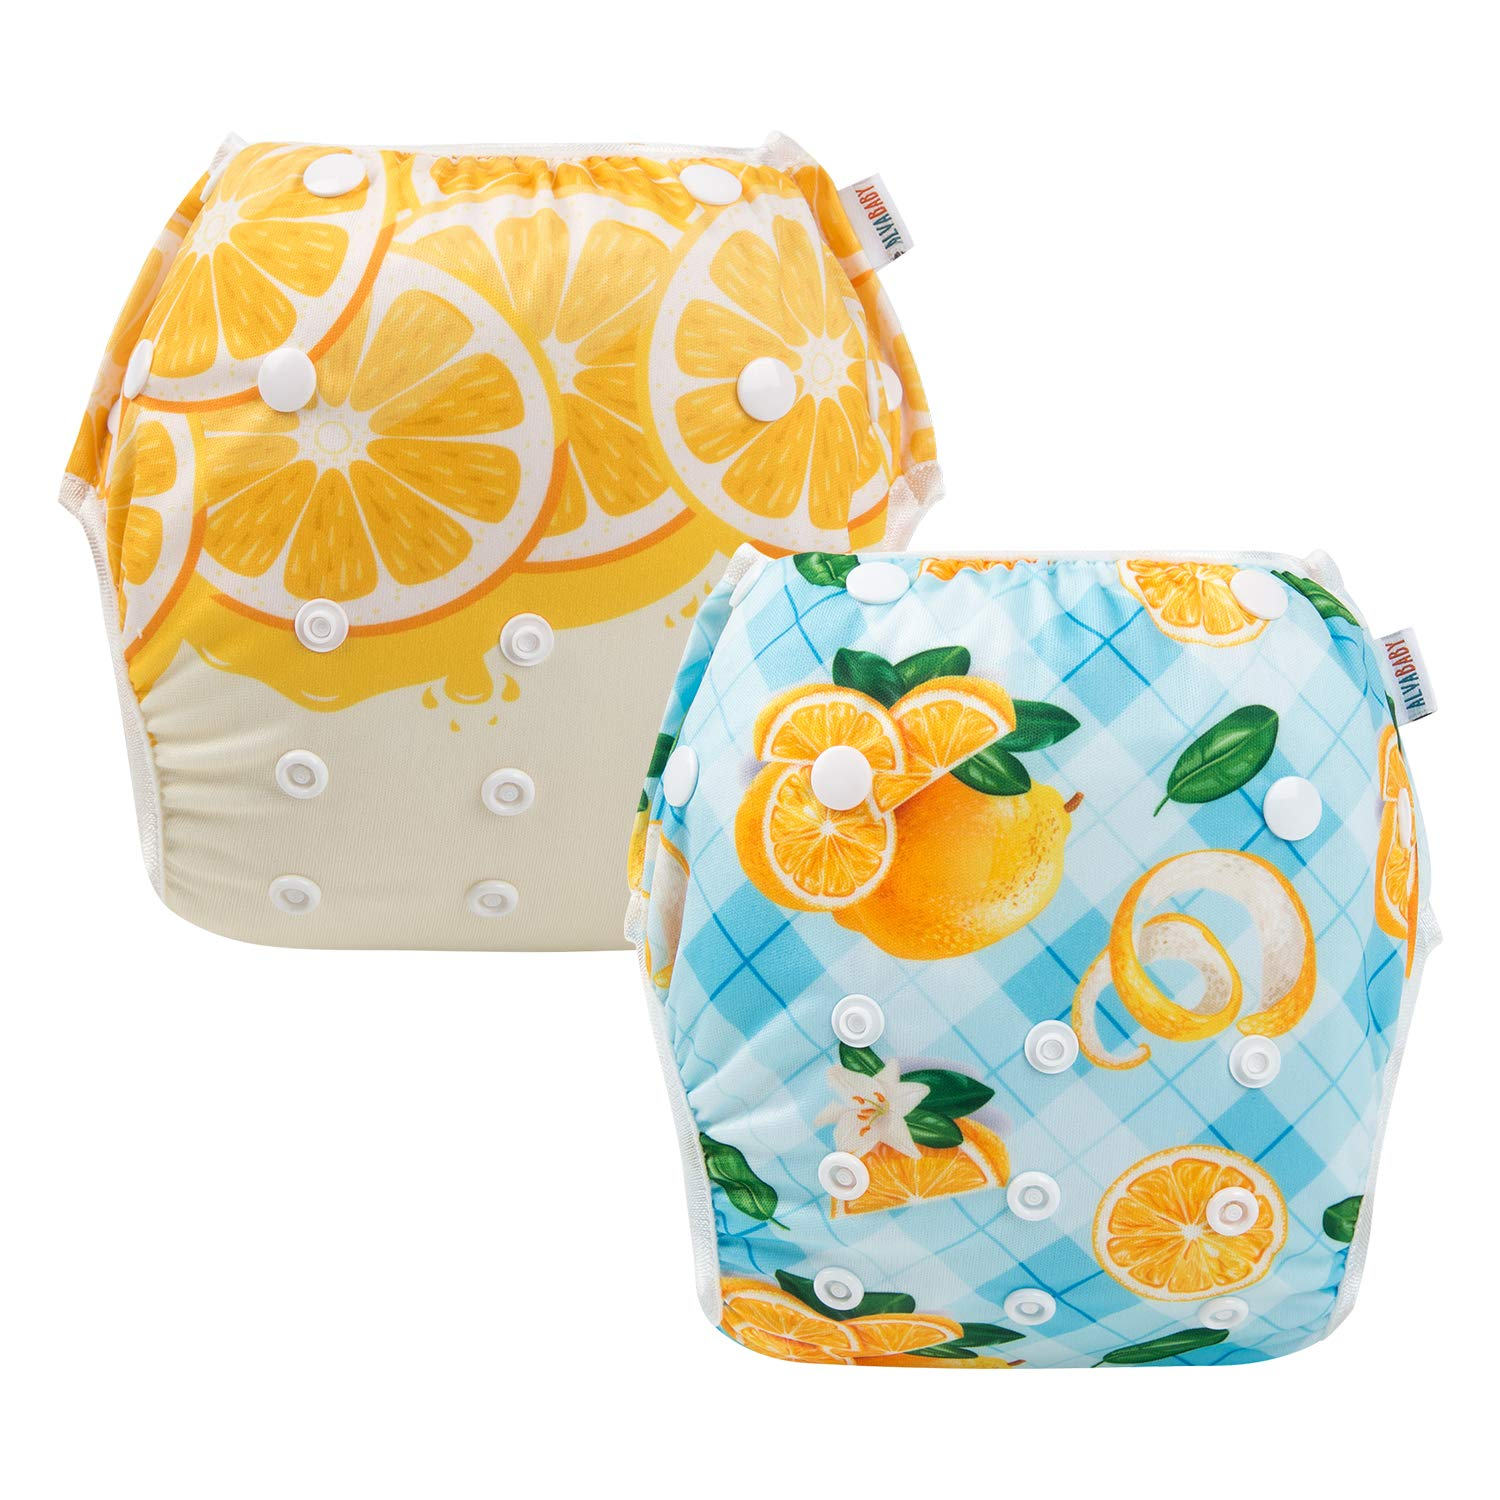 ALVABABY Baby Swim Diapers 3pcs Reuseable /& Adjustable for Swimming Lesson /& Baby Shower Gifts 3SW33